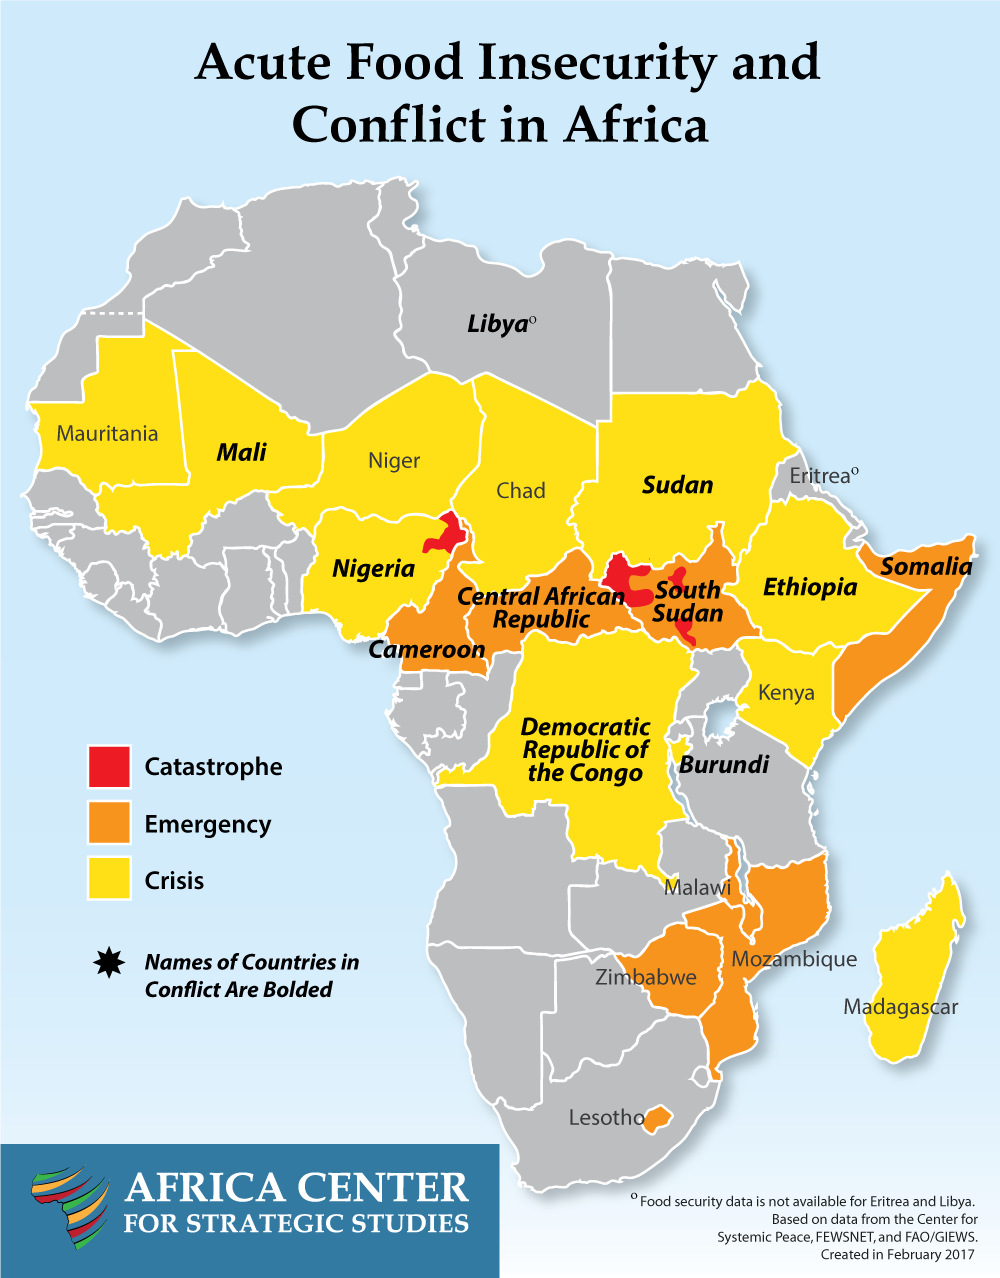 Nineteen African countries are facing acute levels of food insecurity. Ten of those countries are experiencing internal conflict.